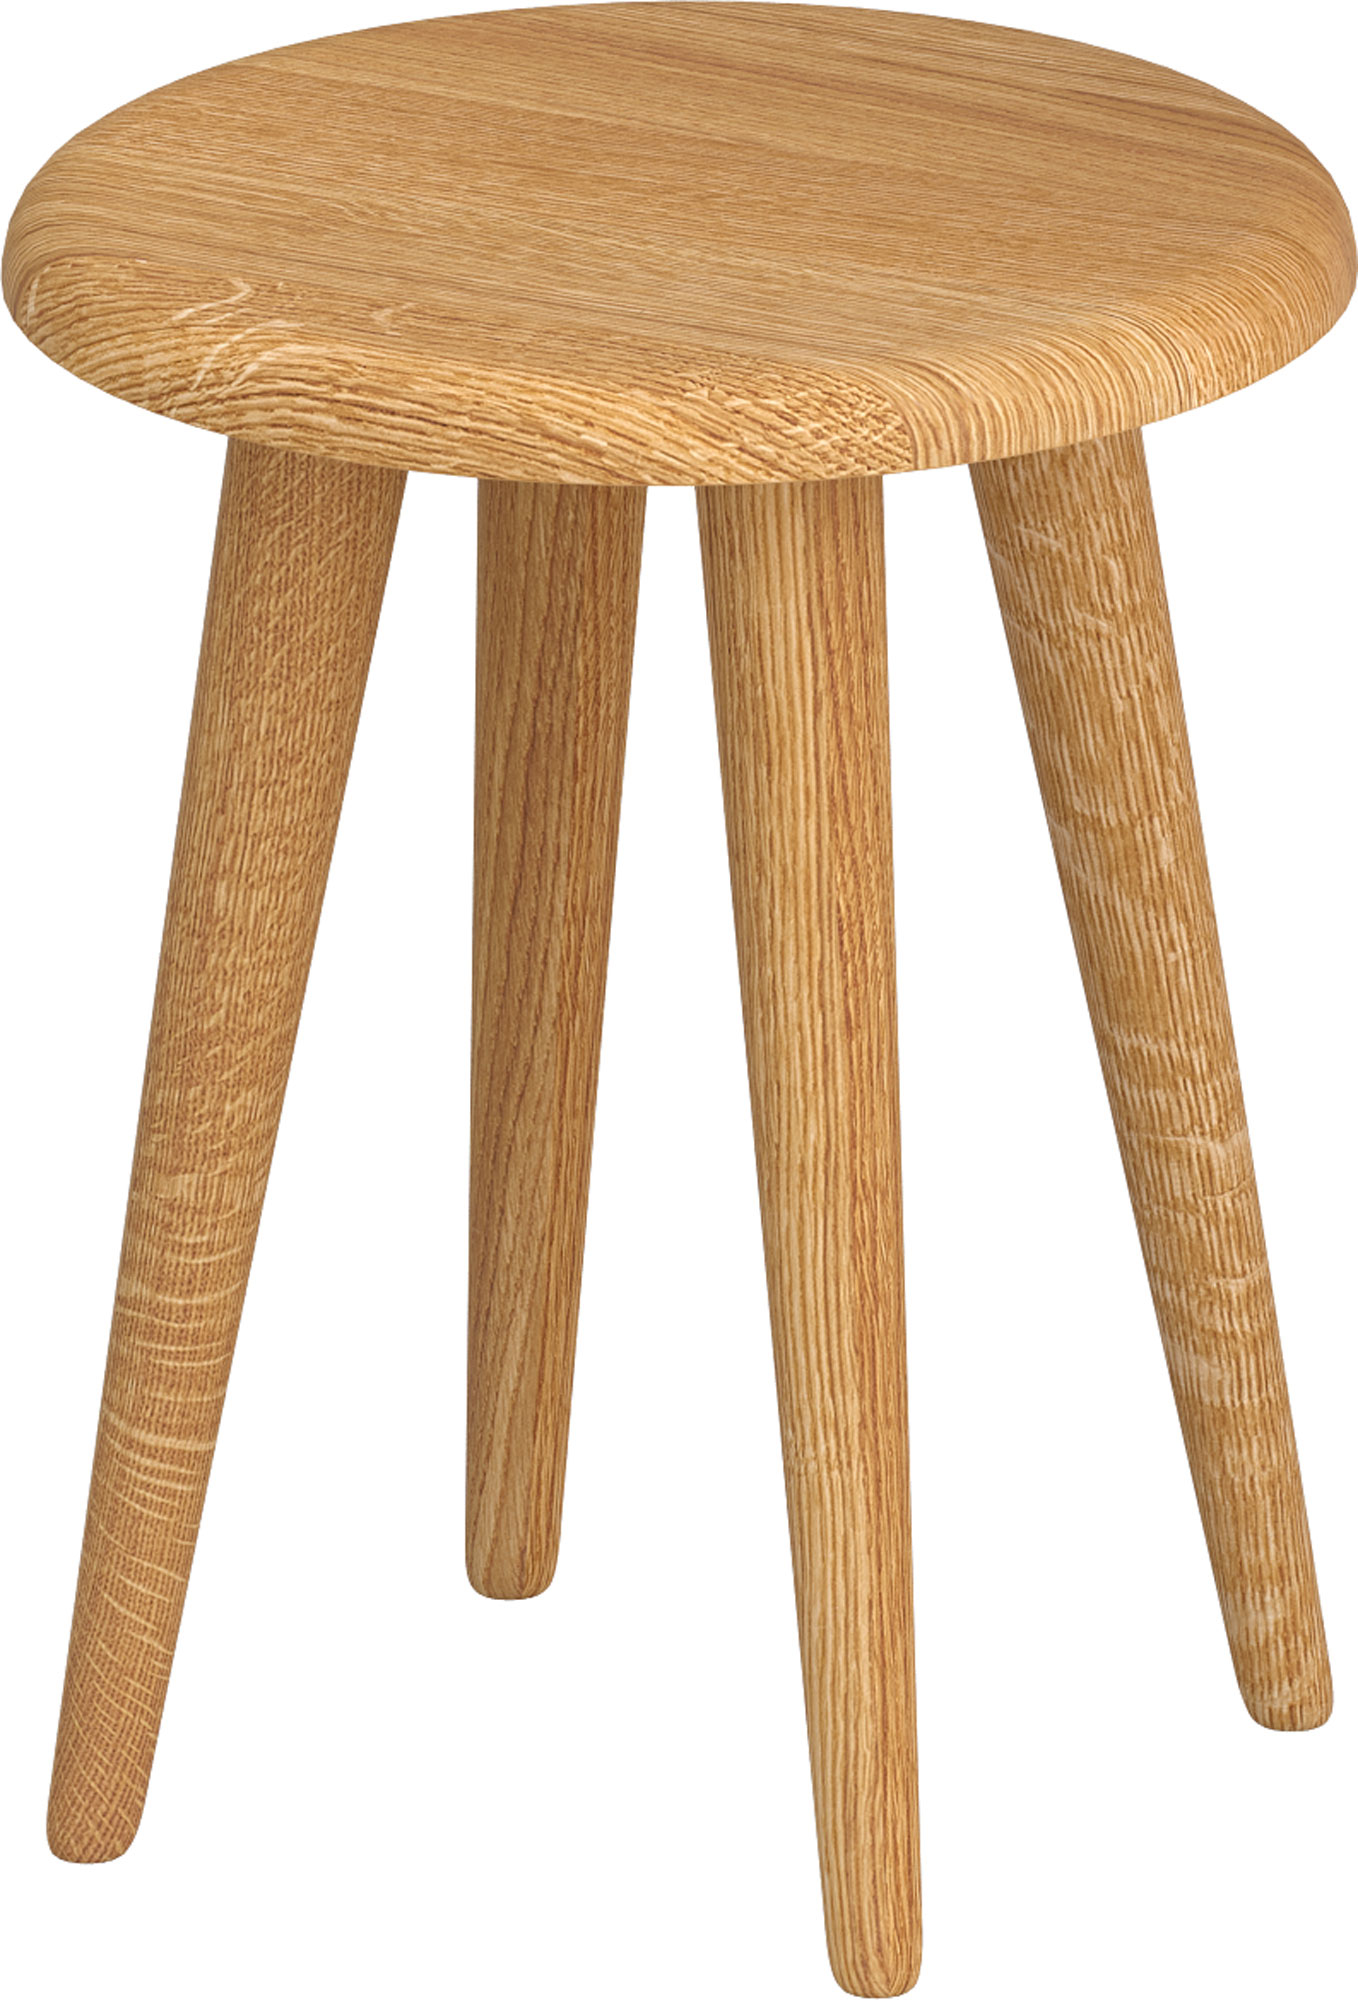 Round Wood Stool AMBIO ROUND  custom made in solid wood by vitamin design